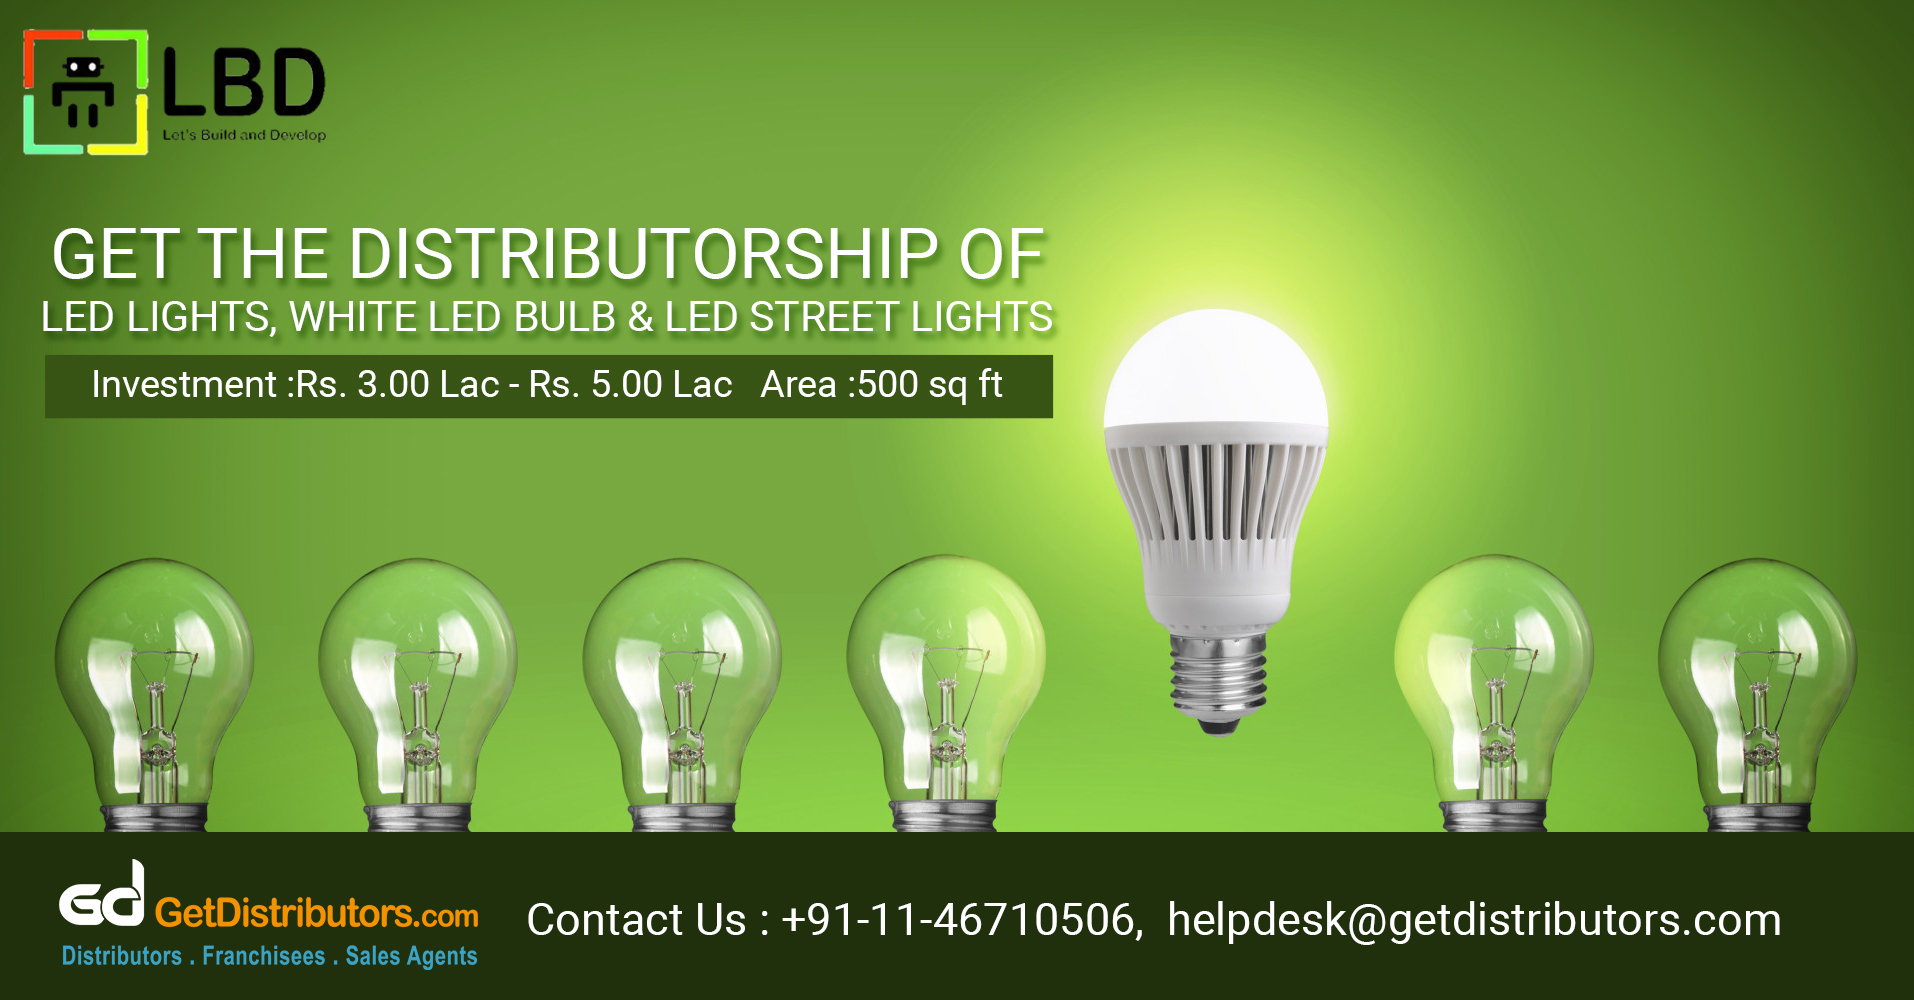 High Grade Outdoor Lighting And LED Products Distributorship